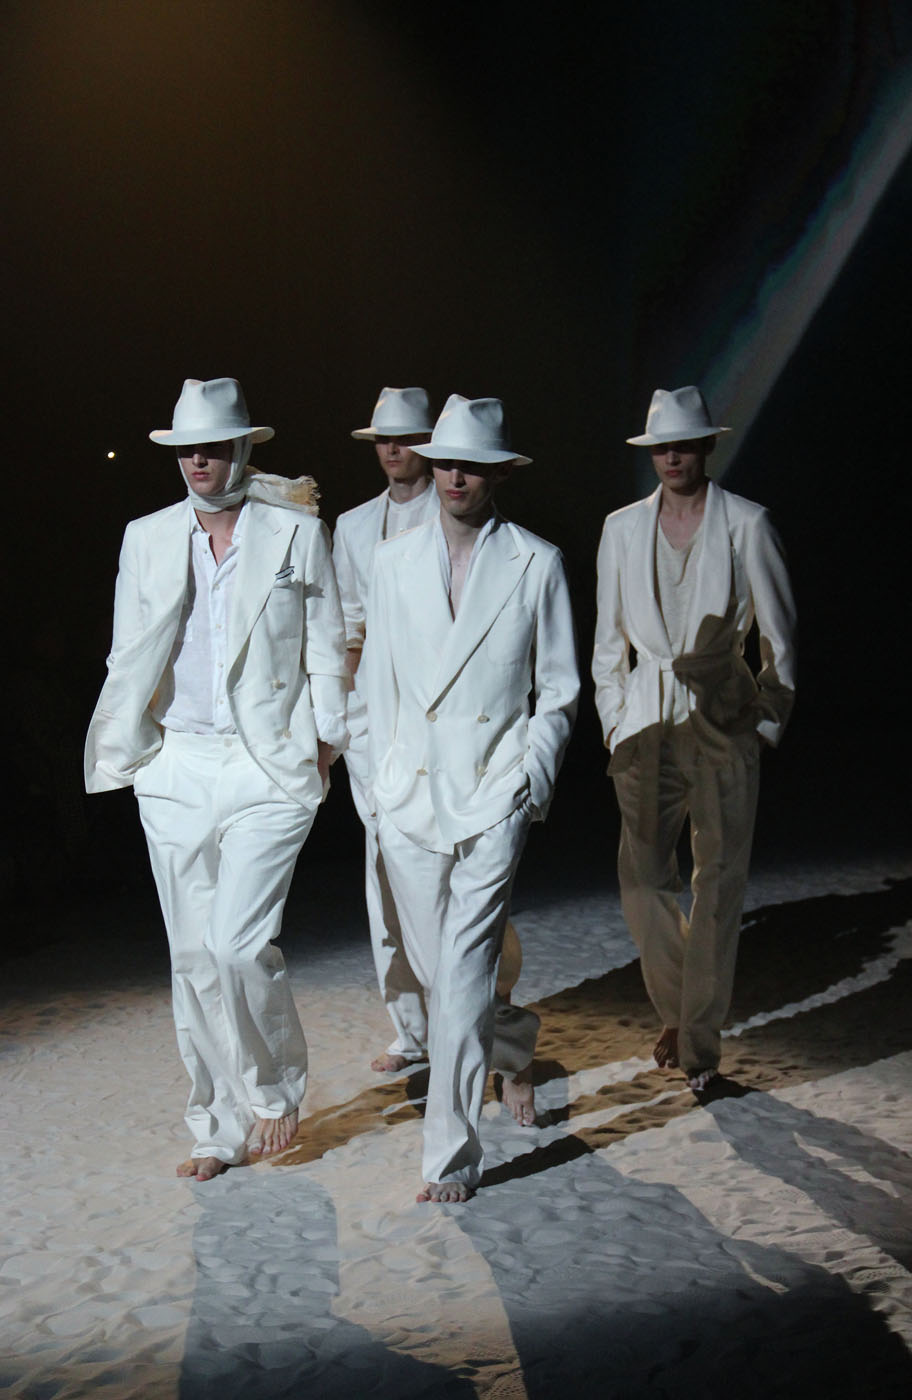 corneliani-spring-summer-2012-men-collection-milano-fashion-week-2012-corneliani-fashion-show-catwalk